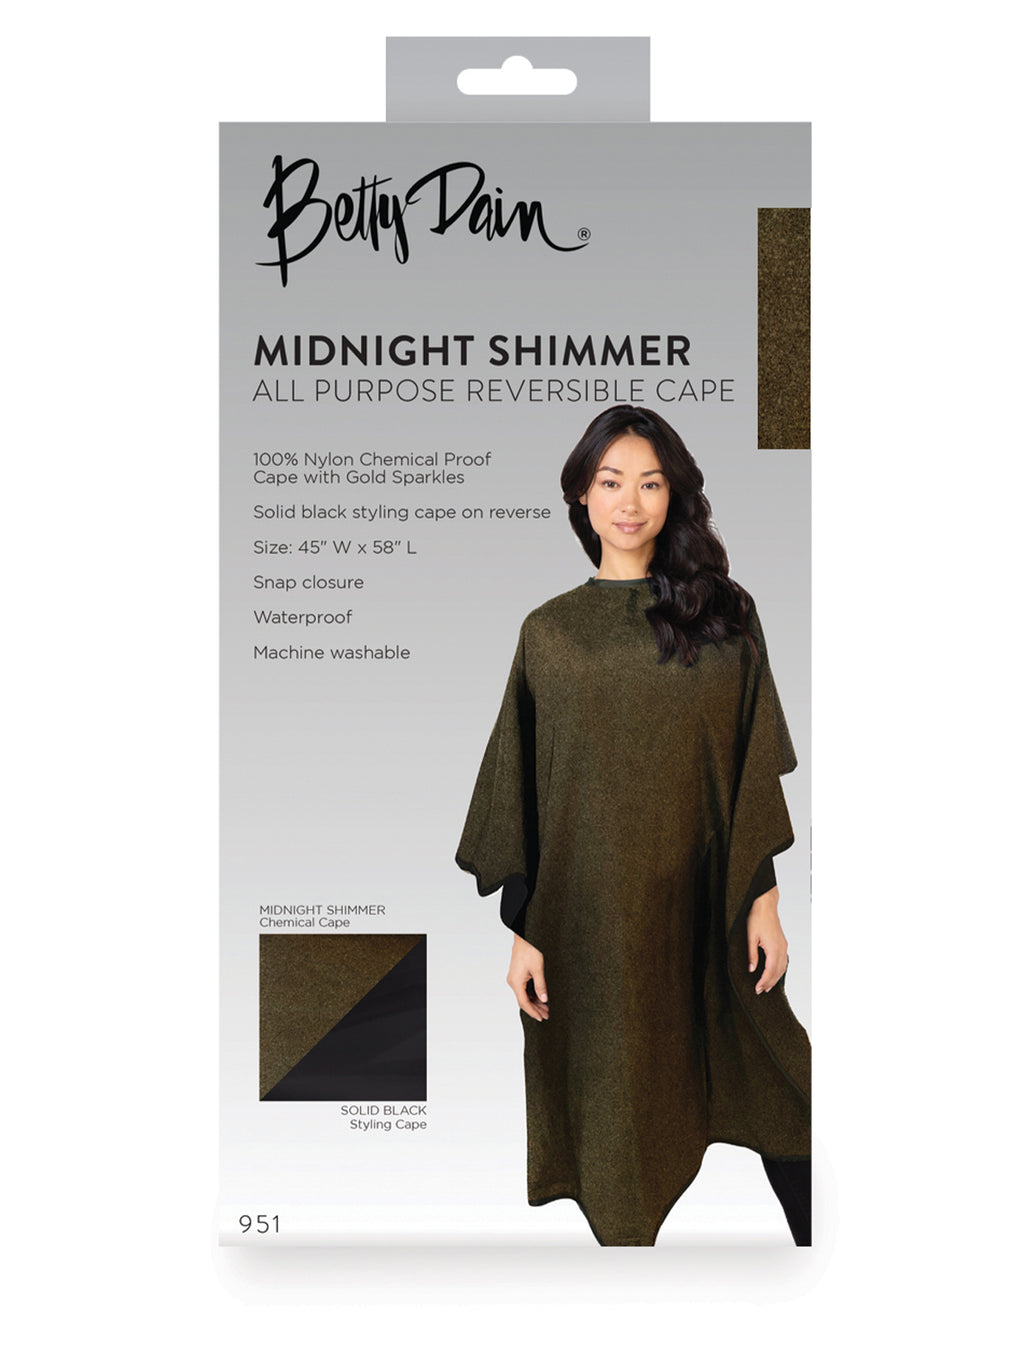 All-Purpose Reversible Midnight Shimmer Cape